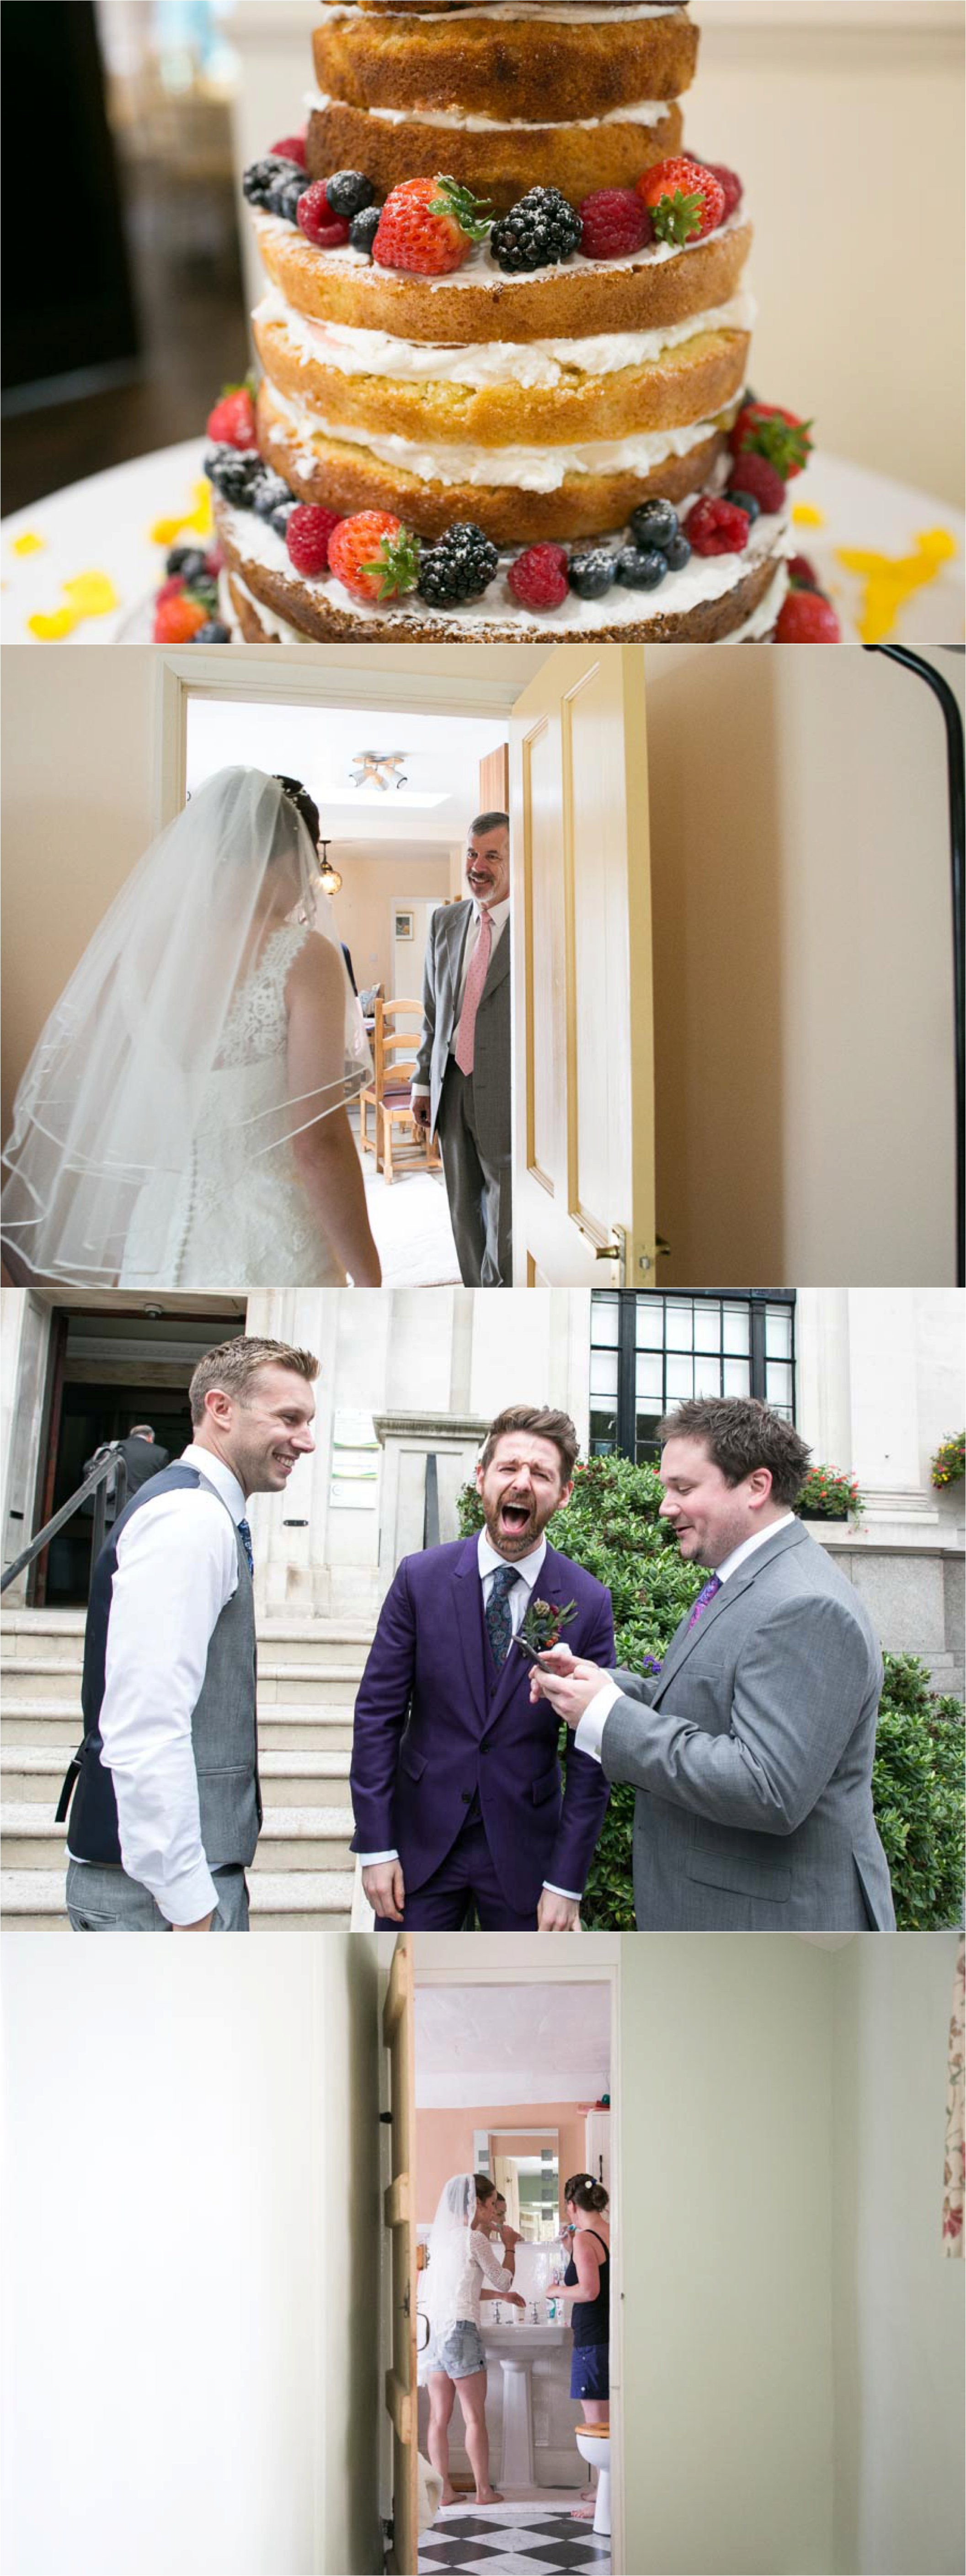 naked cake and laughing groom at london and suffolk weddings